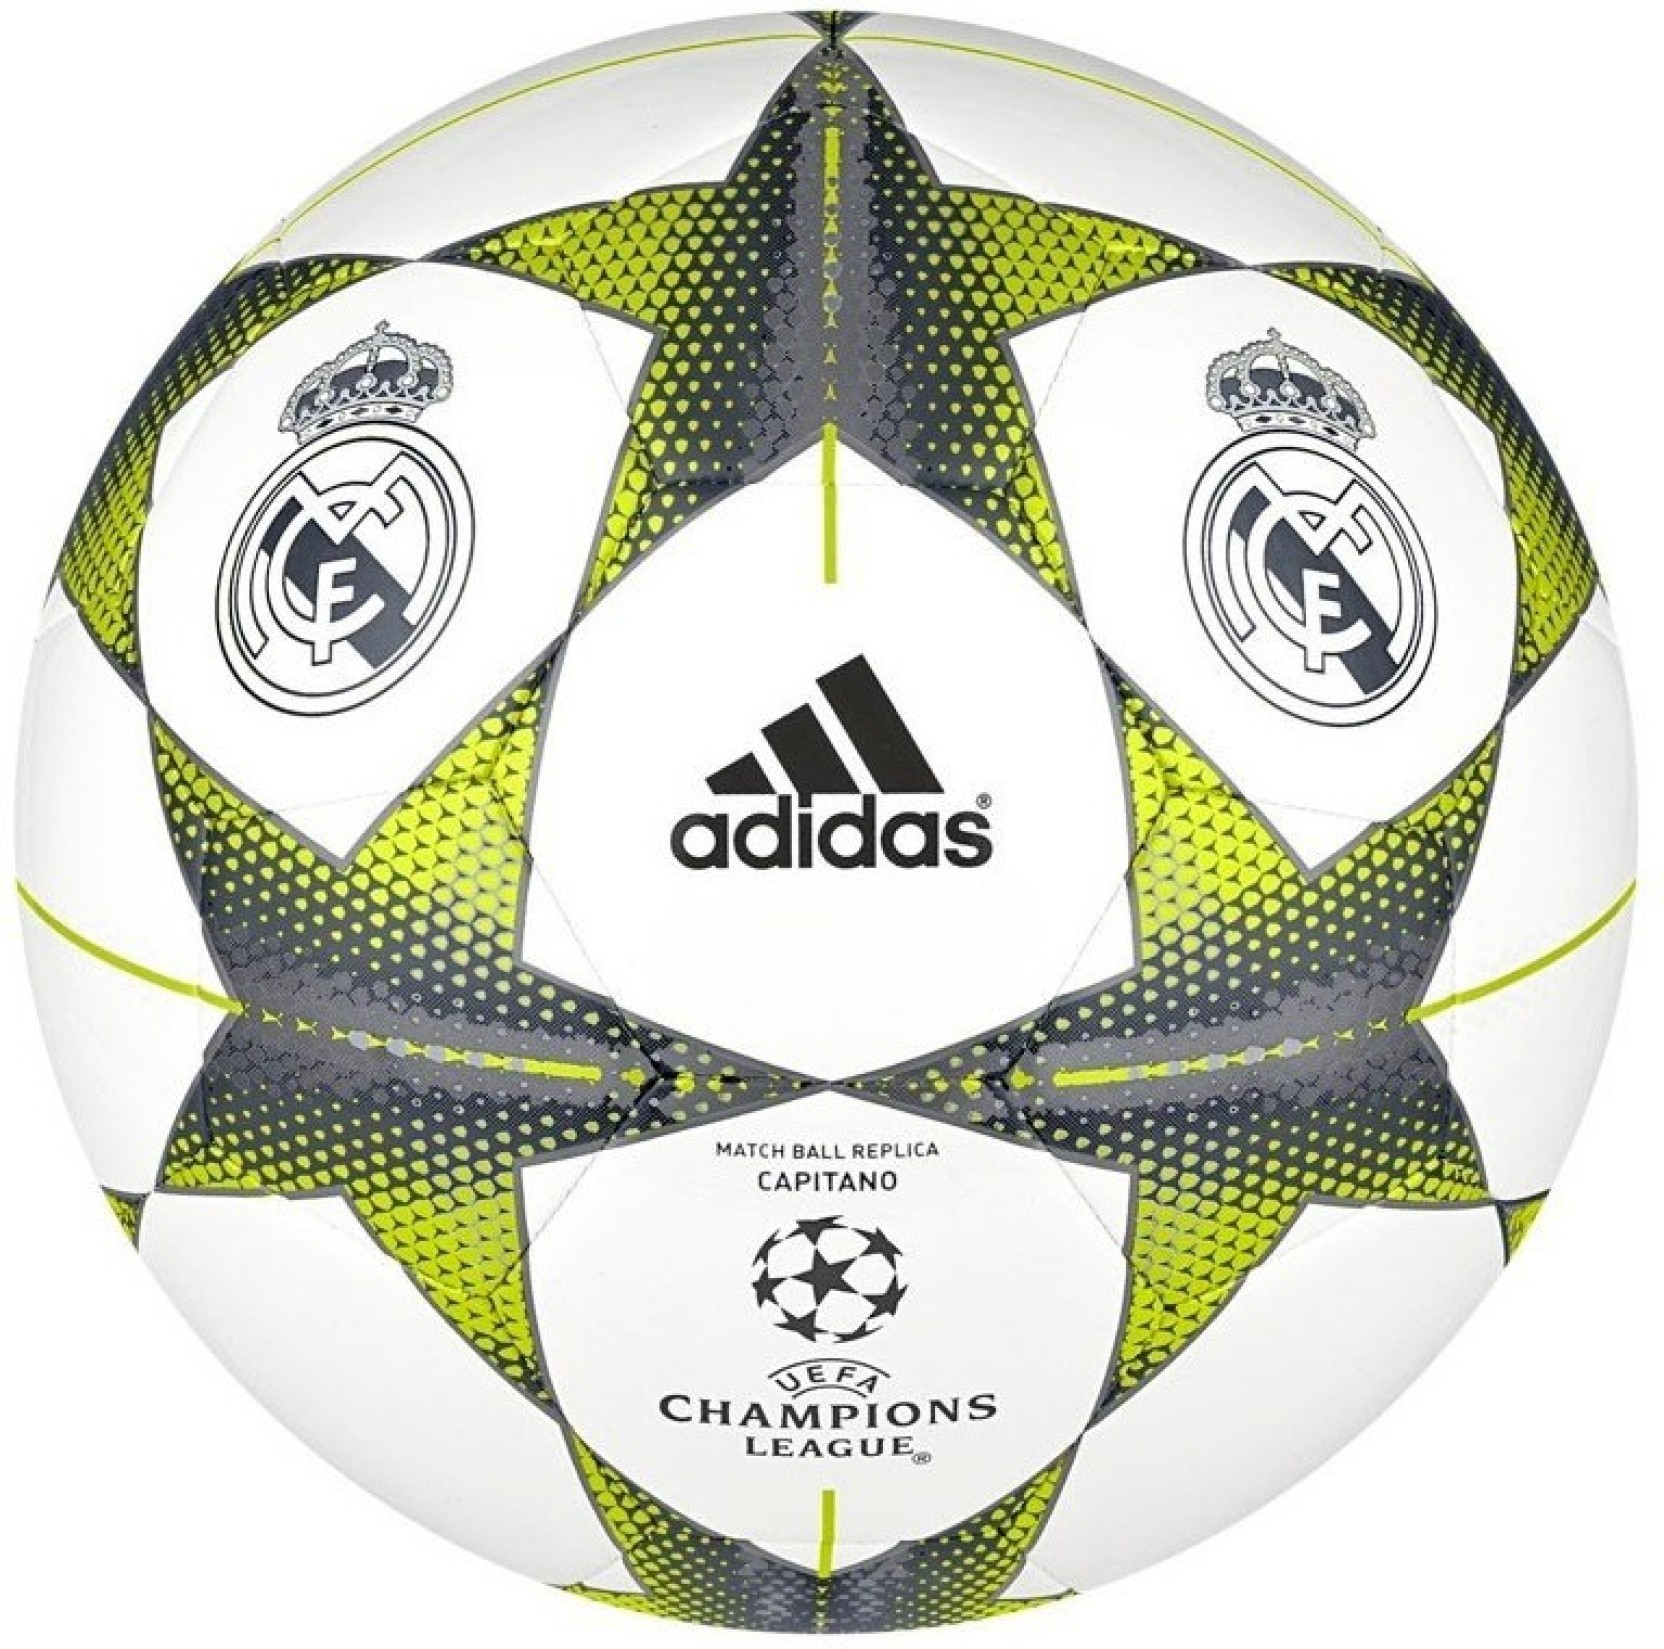 adidas 2015 uefa champions league glider football